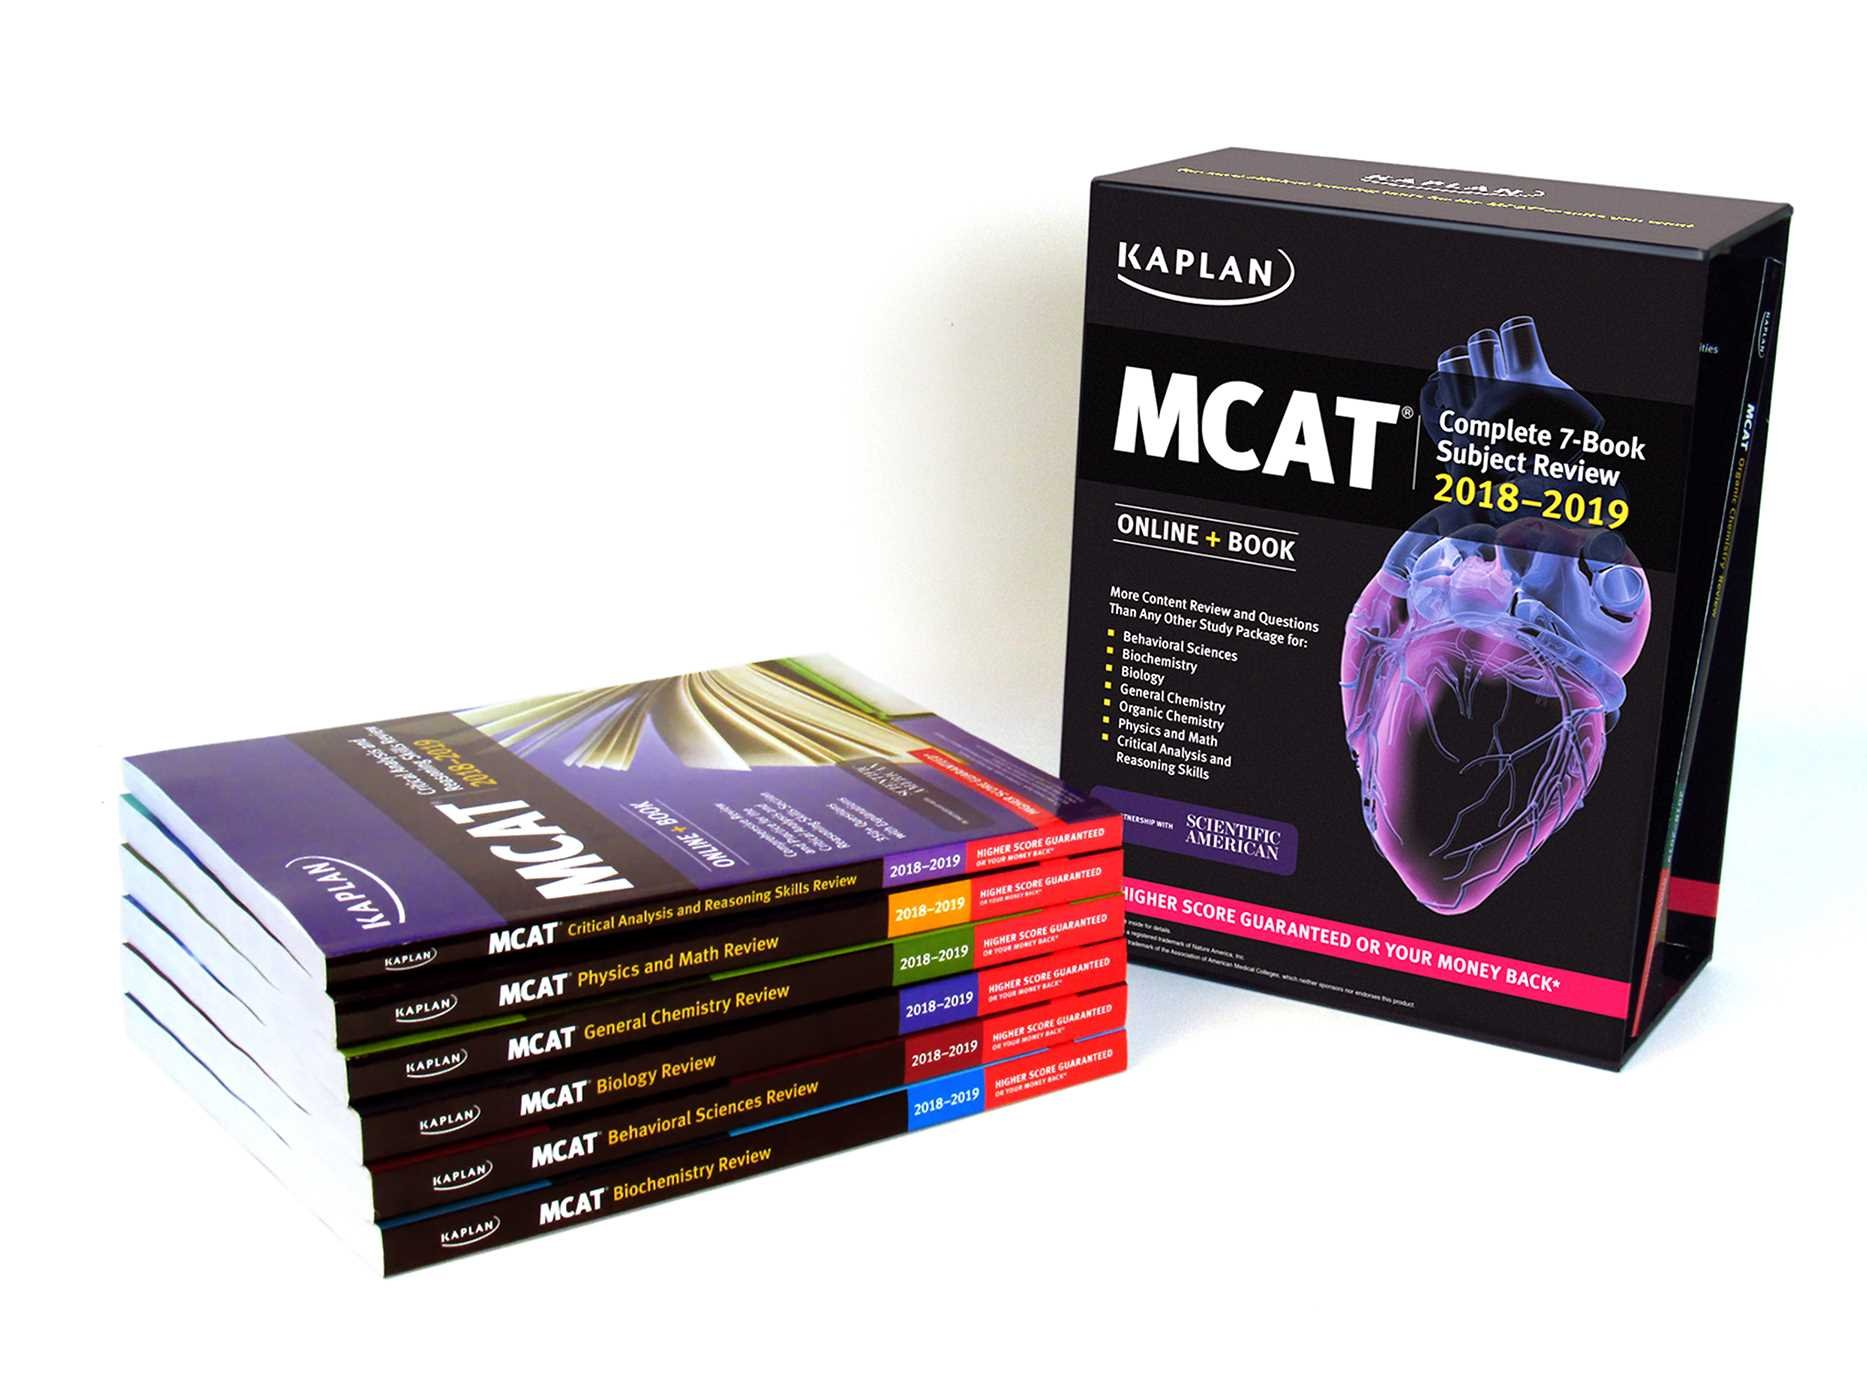 MCAT Complete 7-Book Subject Review 2018-2019: Online + Book: Kaplan Test  Prep: 9781506223957: Books - Amazon.ca